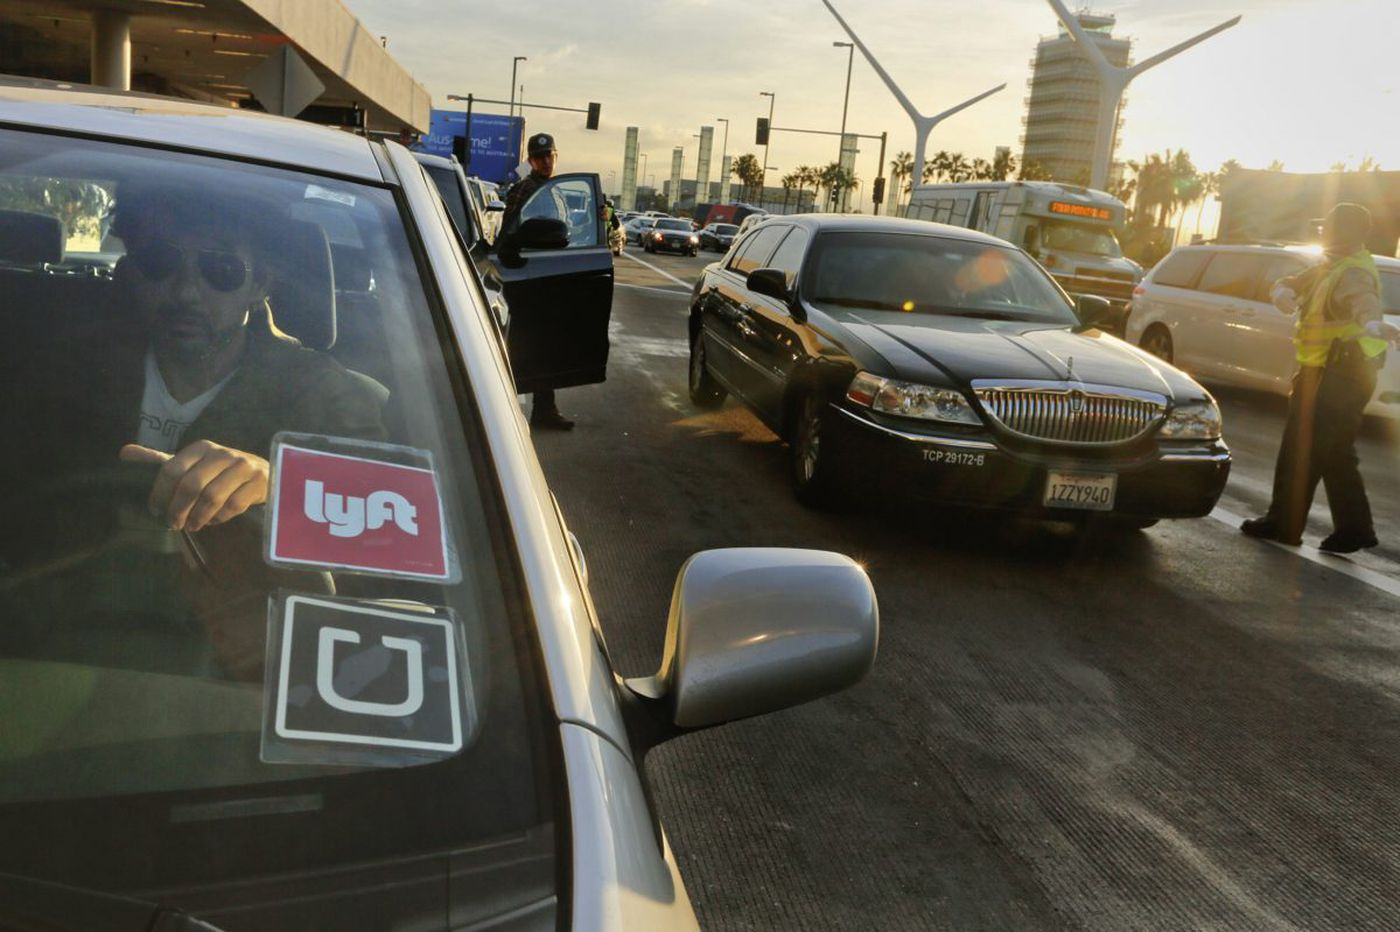 The Philly connection to the Uber and Lyft drivers' strike in L.A.